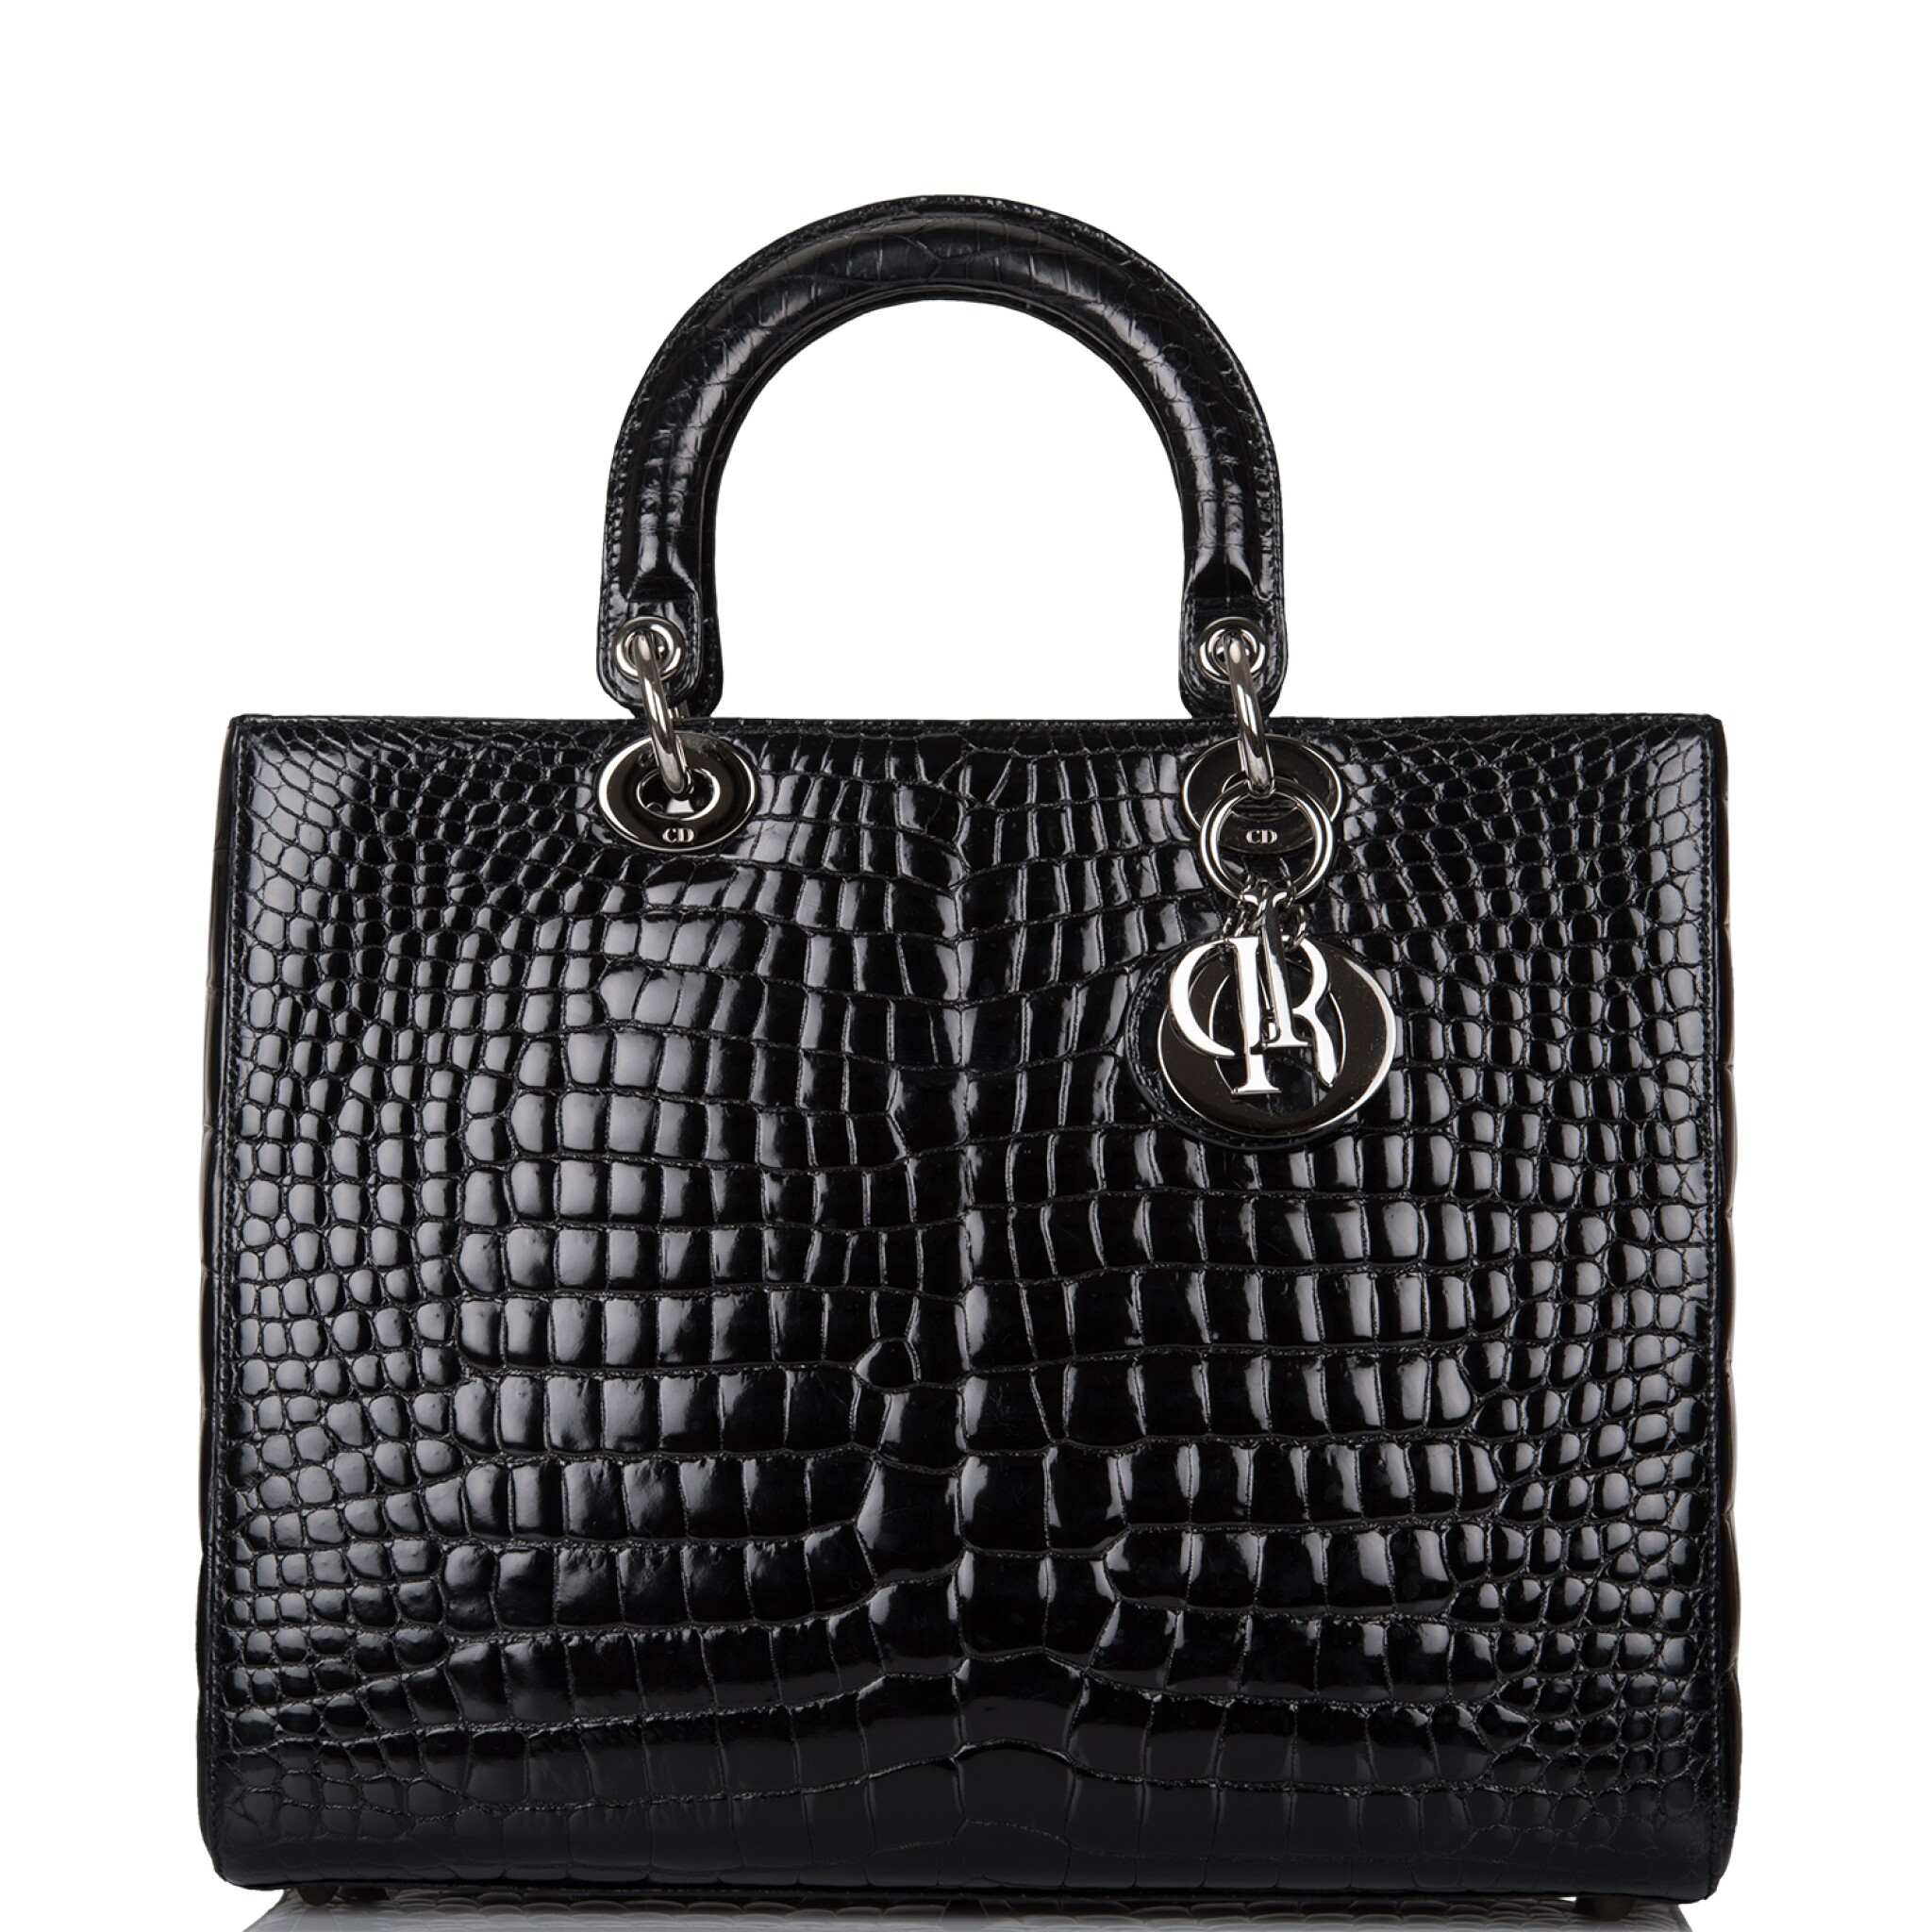 View full screen - View 1 of Lot 105. CHRISTIAN DIOR    BLACK SHINY NILOTICUS CROCODILE LARGE LADY DIOR BAG WITH RUTHENIUM HARDWARE.